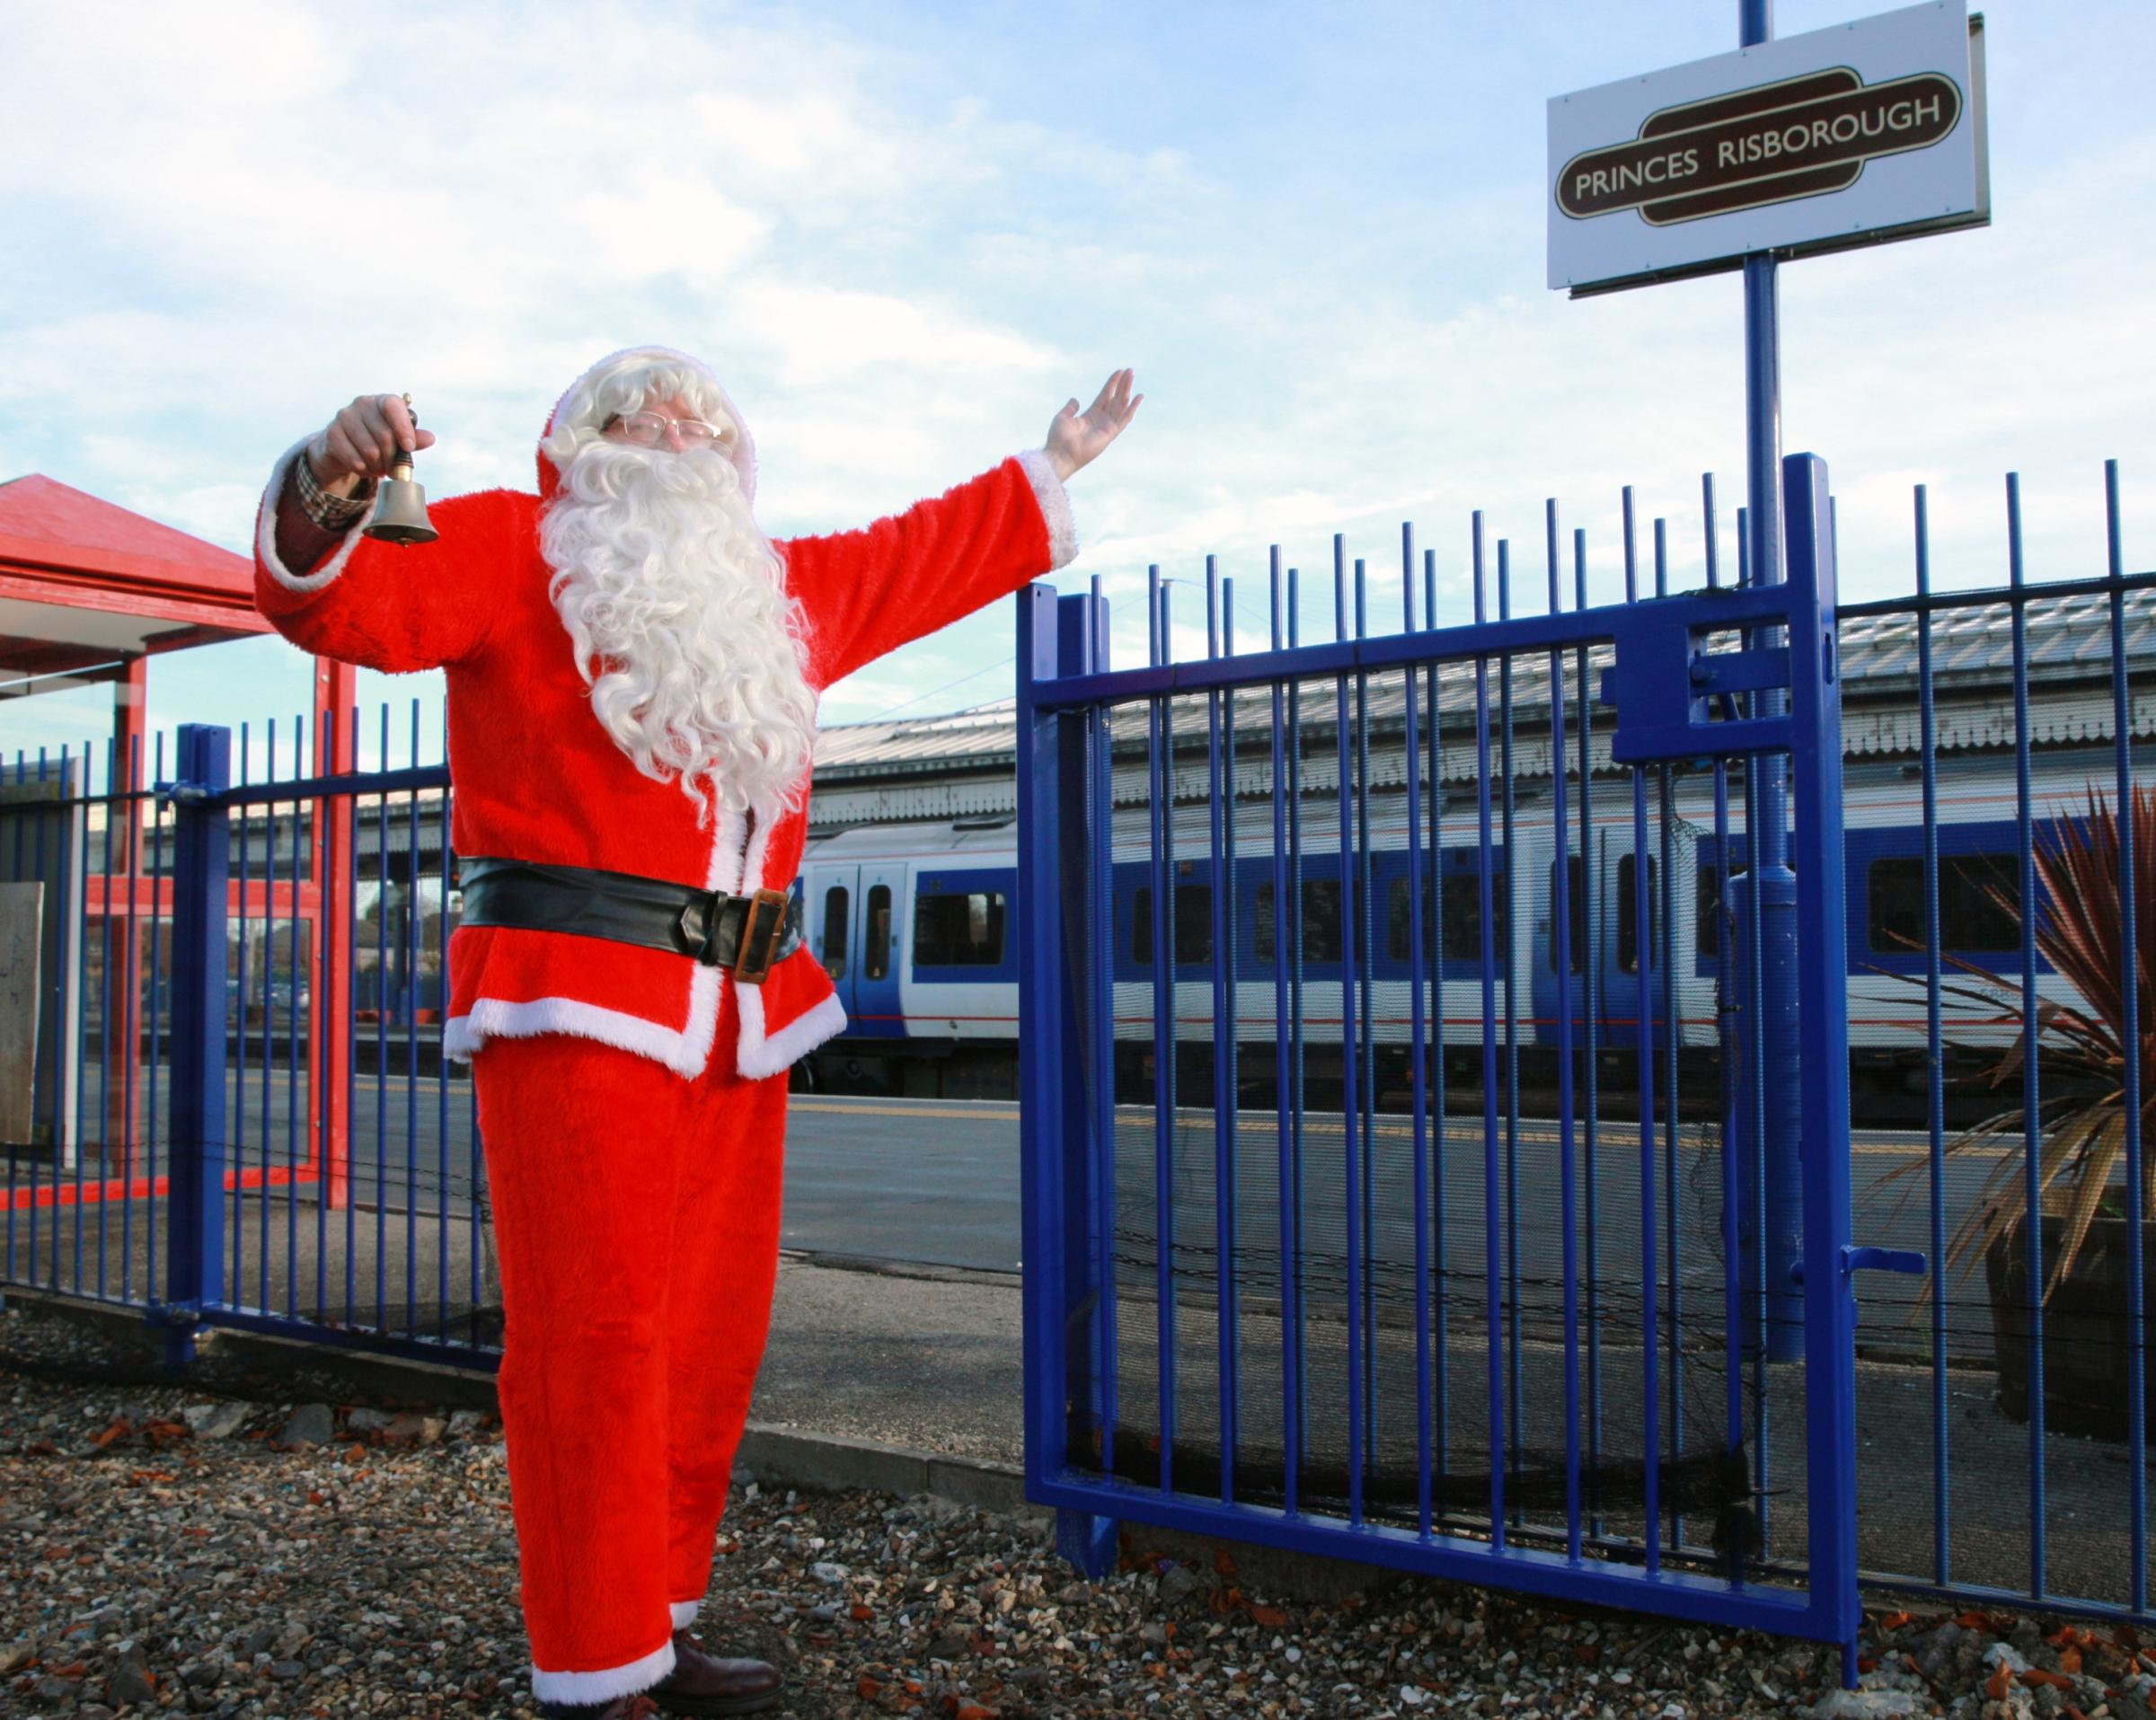 The Chinnor and Princes Risborough Railway have won an award and announced a special santa service